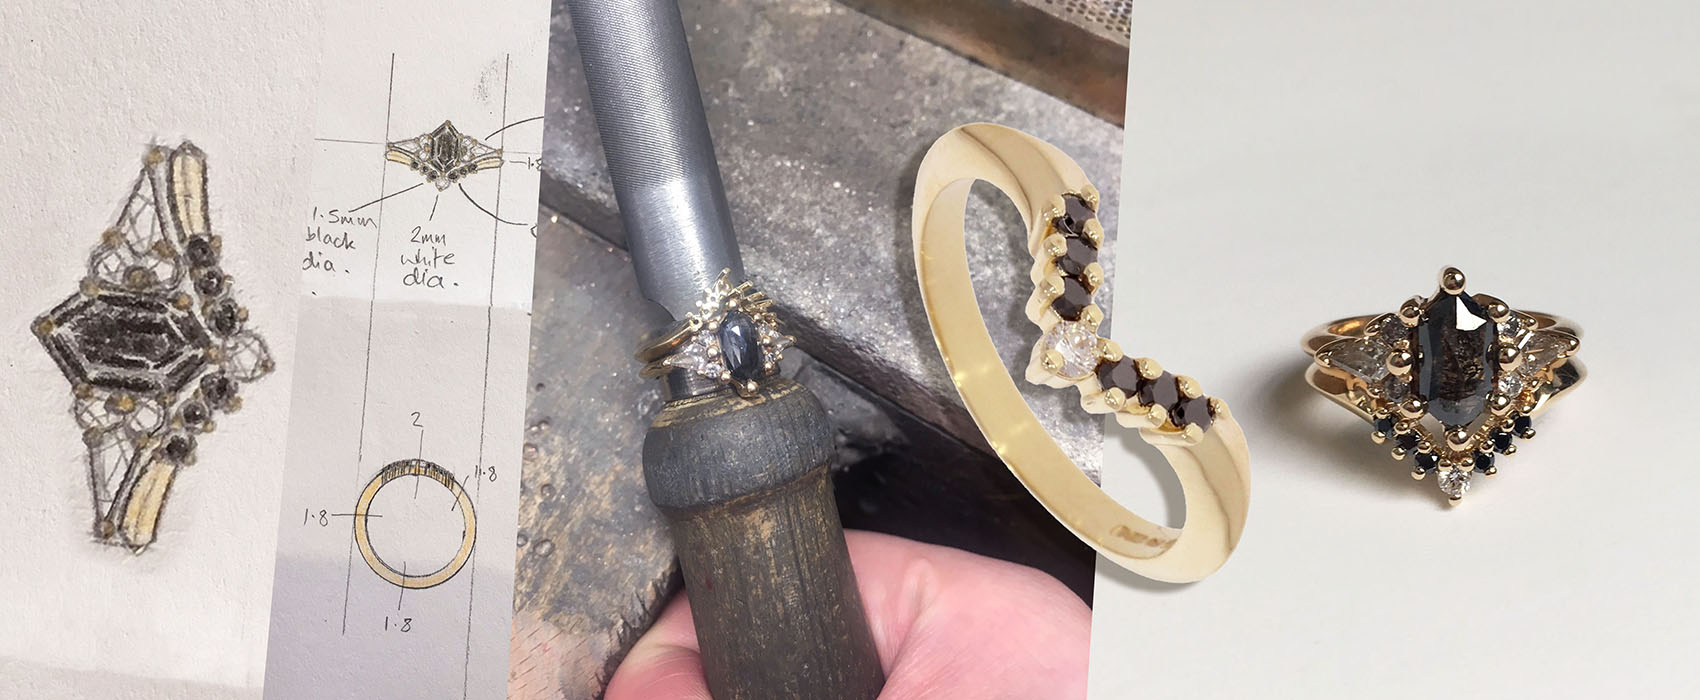 From sketch to finished bespoke jewellery at Wyldes